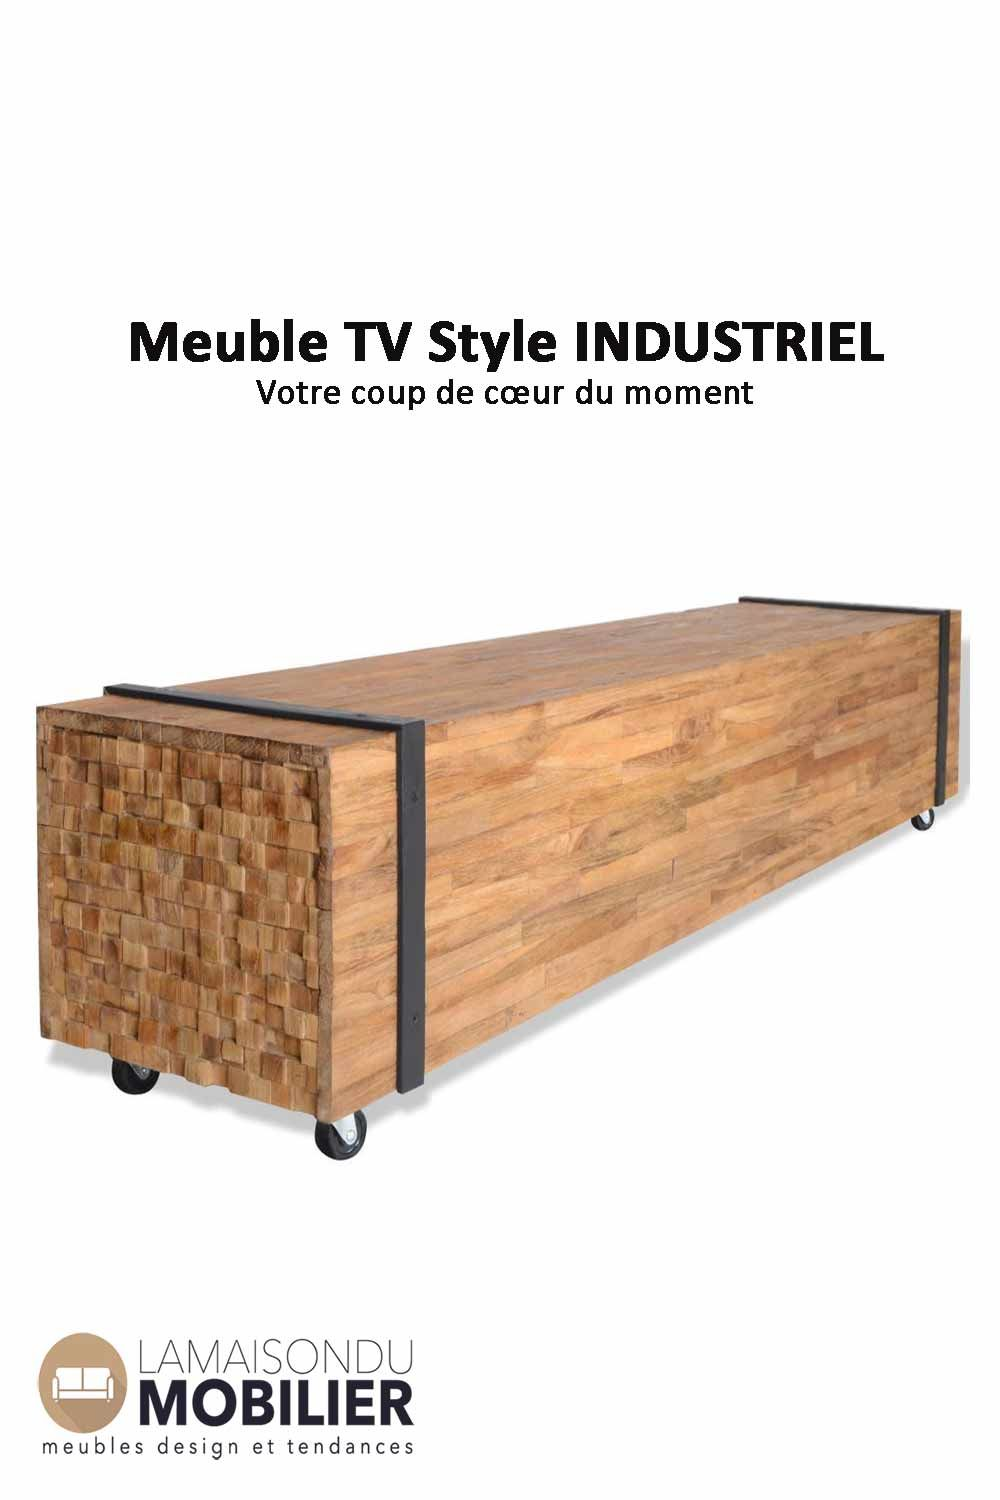 Meuble Tv Table Basse En Teck 150 Cm Table Basse Teck Meuble Tv Style Industriel Meuble Tv